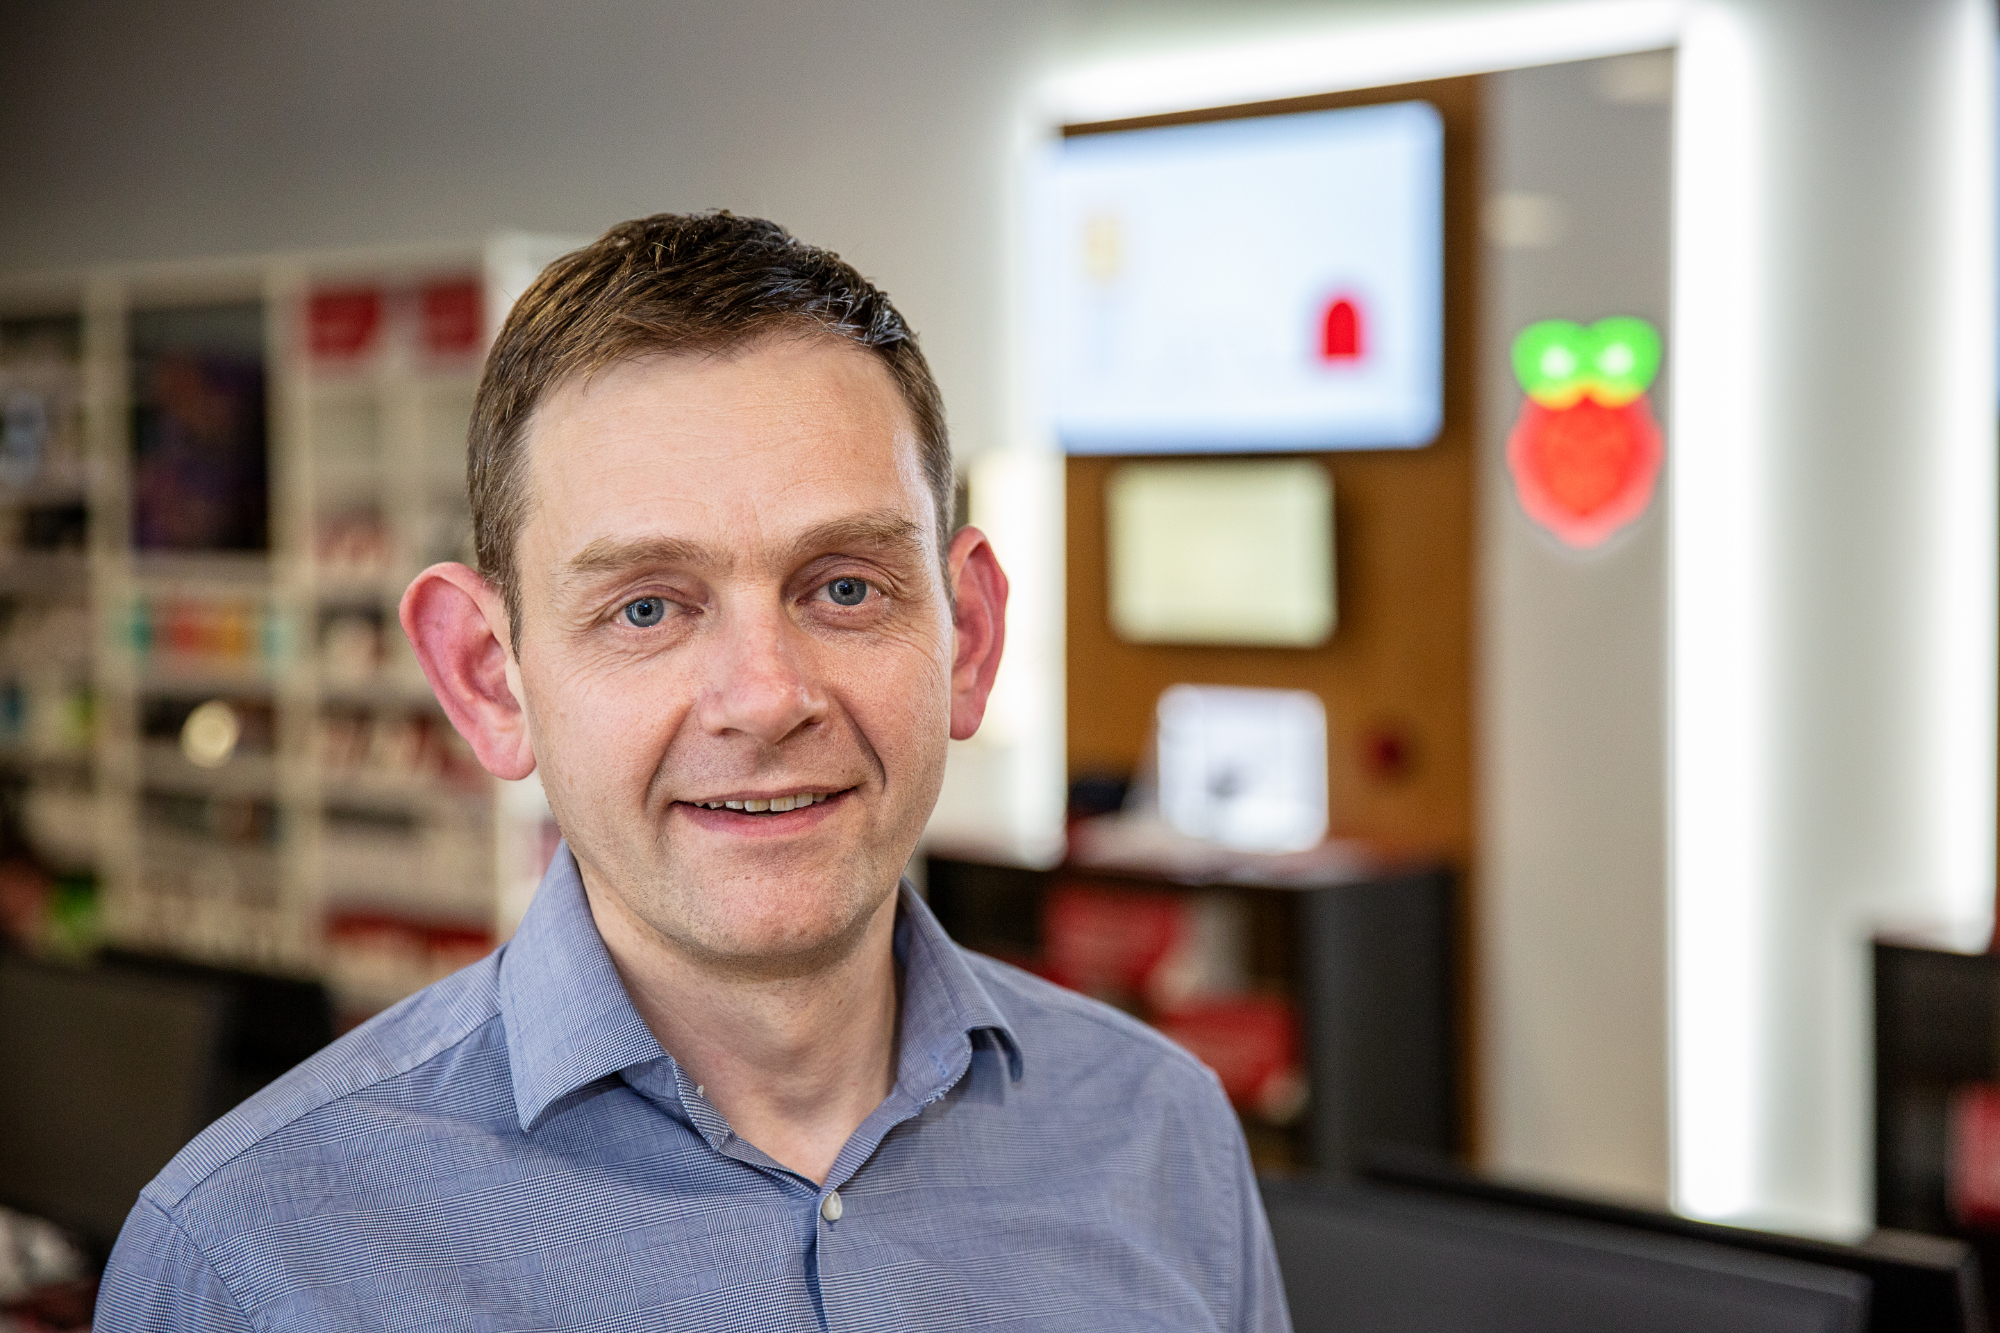 Gordon Hollingworth, Director of Software Engineering at Raspberry Pi, tells us all about the planning and development of the new store